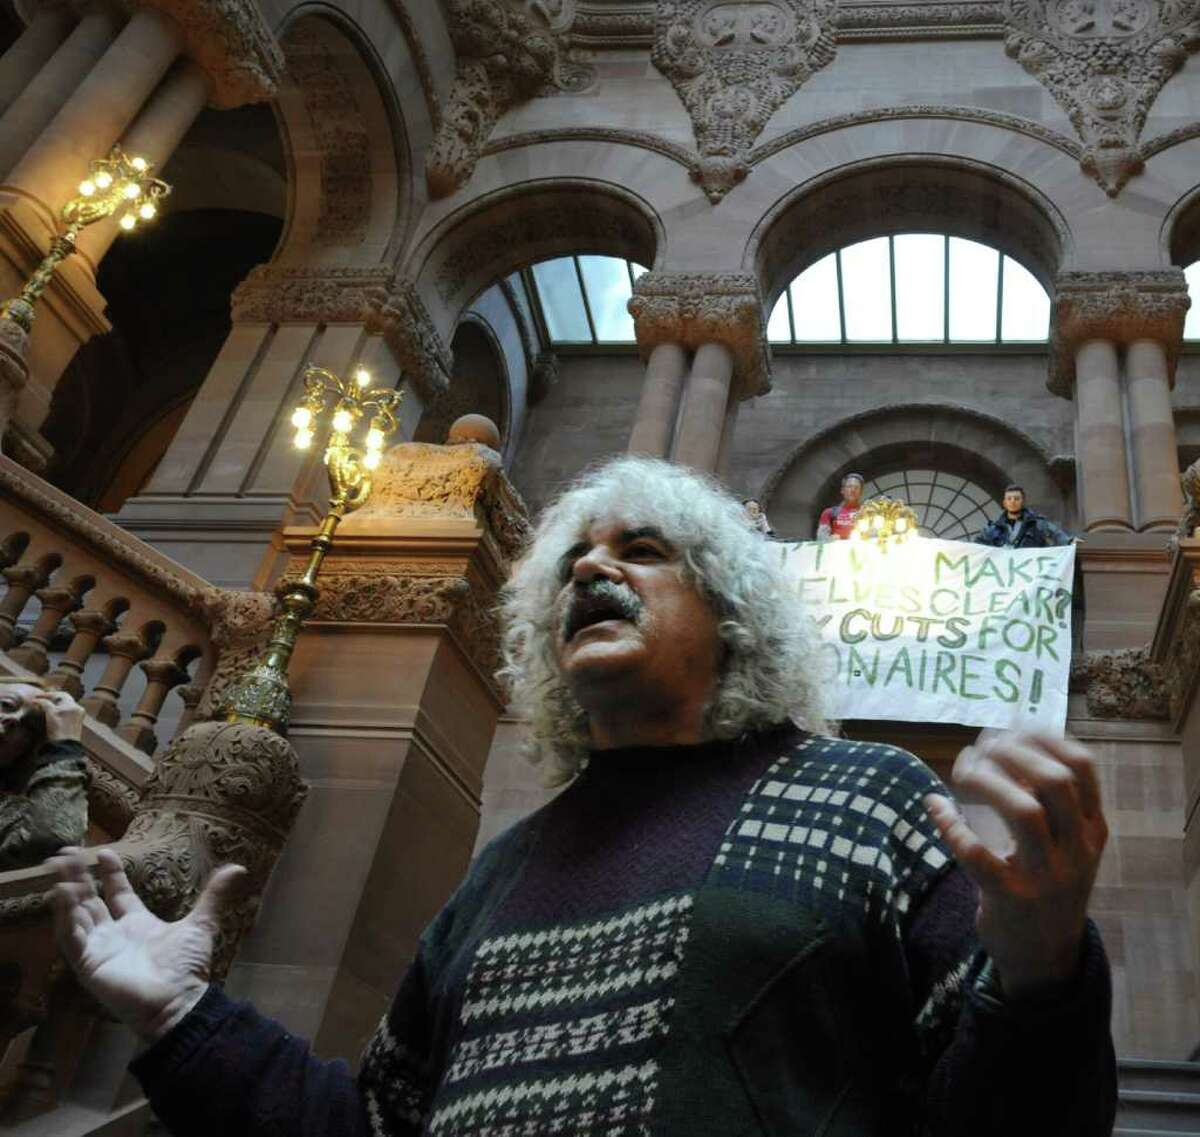 """CSEA member Joe Lombardo adds his feelings to a discussion of """"The Real Rent Reform"""" campaign on the steps of the Million Dollar staircase in the State Capitol in Albany, N.Y. Dec. 8, 2011. (Skip Dickstein/Times Union)"""